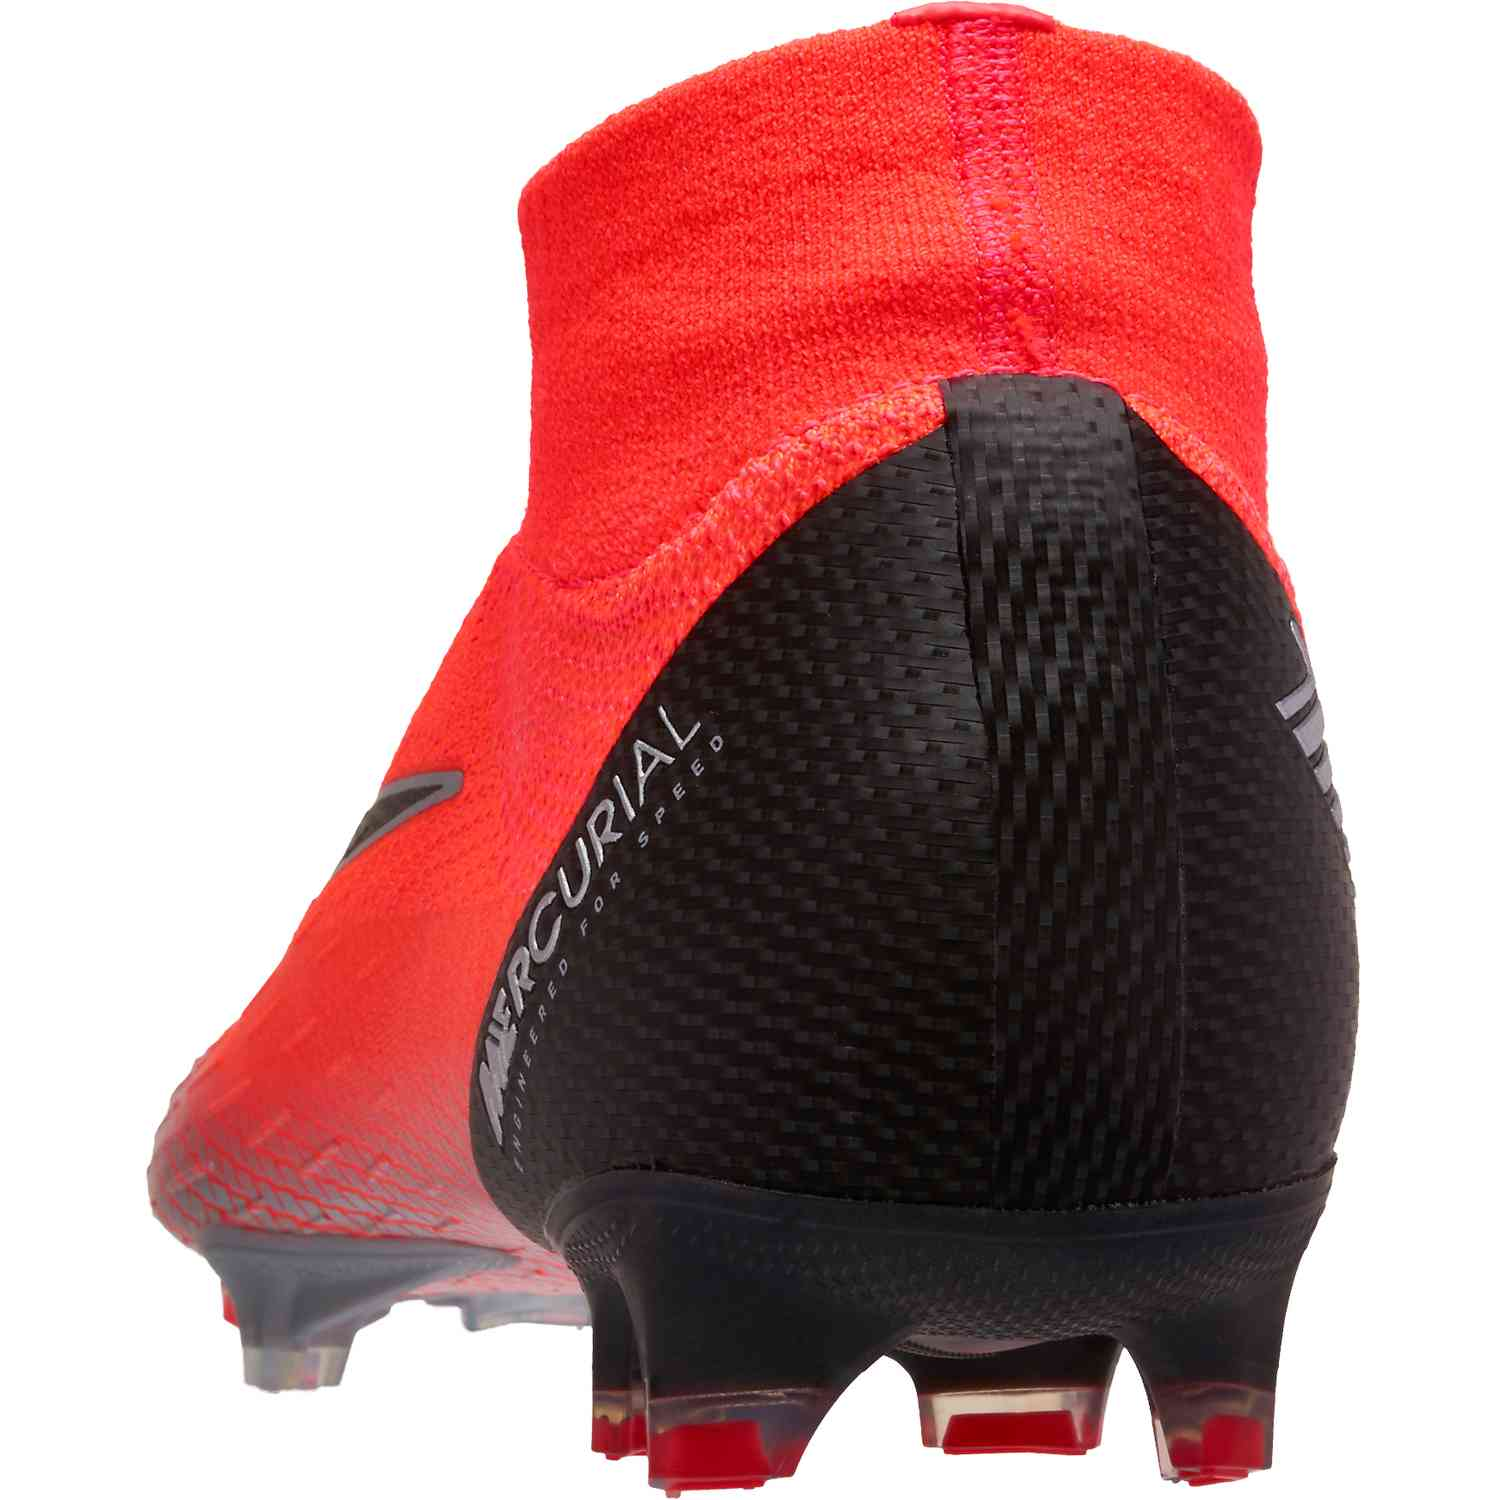 online store 06b3a d754b Nike CR7 Mercurial Superfly Elite - Chapter 7 - SoccerPro.com